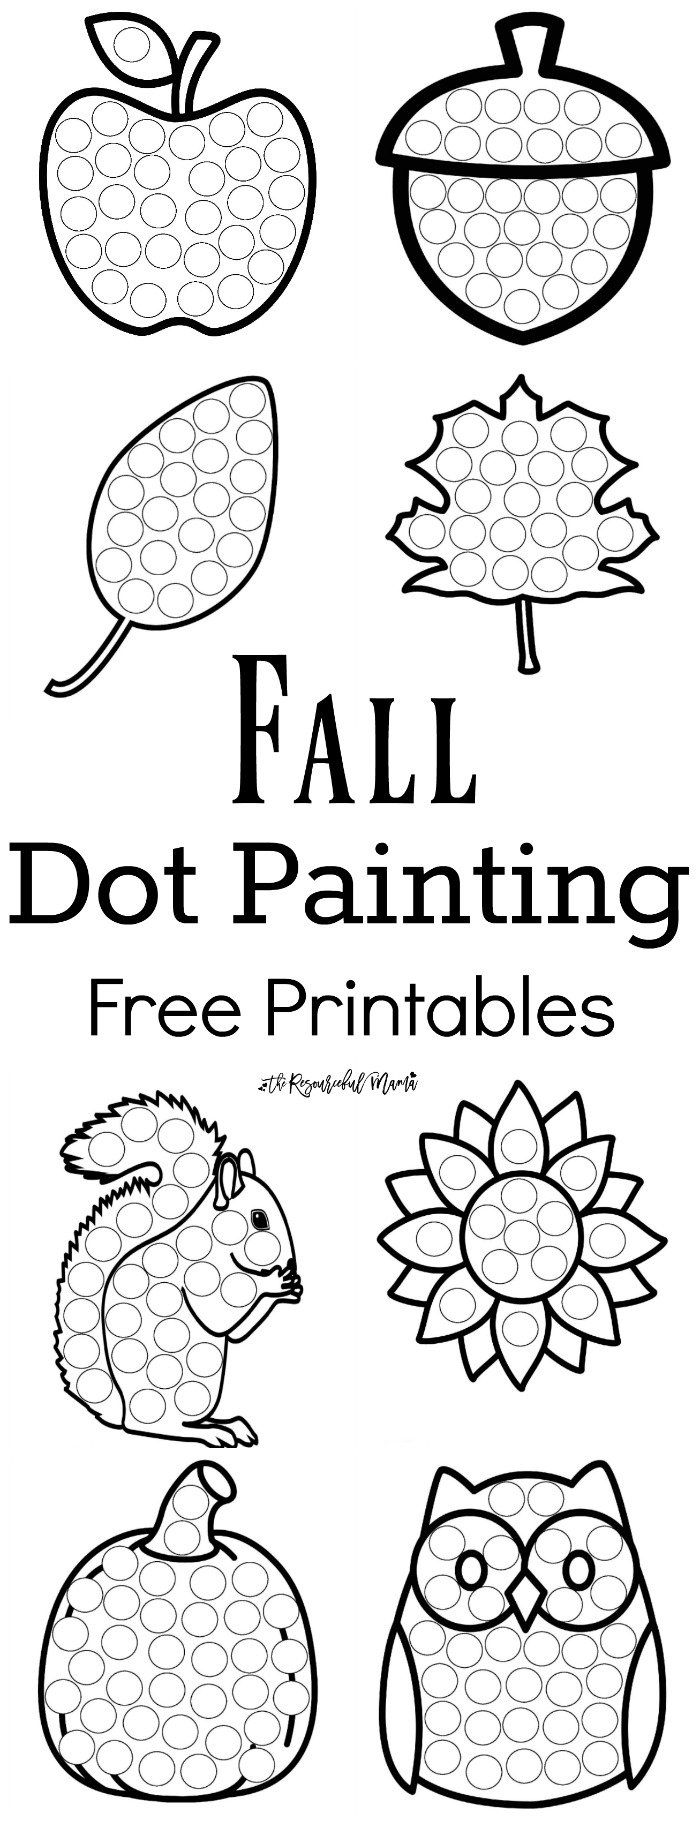 These Fall Dot Painting worksheets are a fun mess free painting activity for young kids that work on hand-eye coordination and fine motor skills.